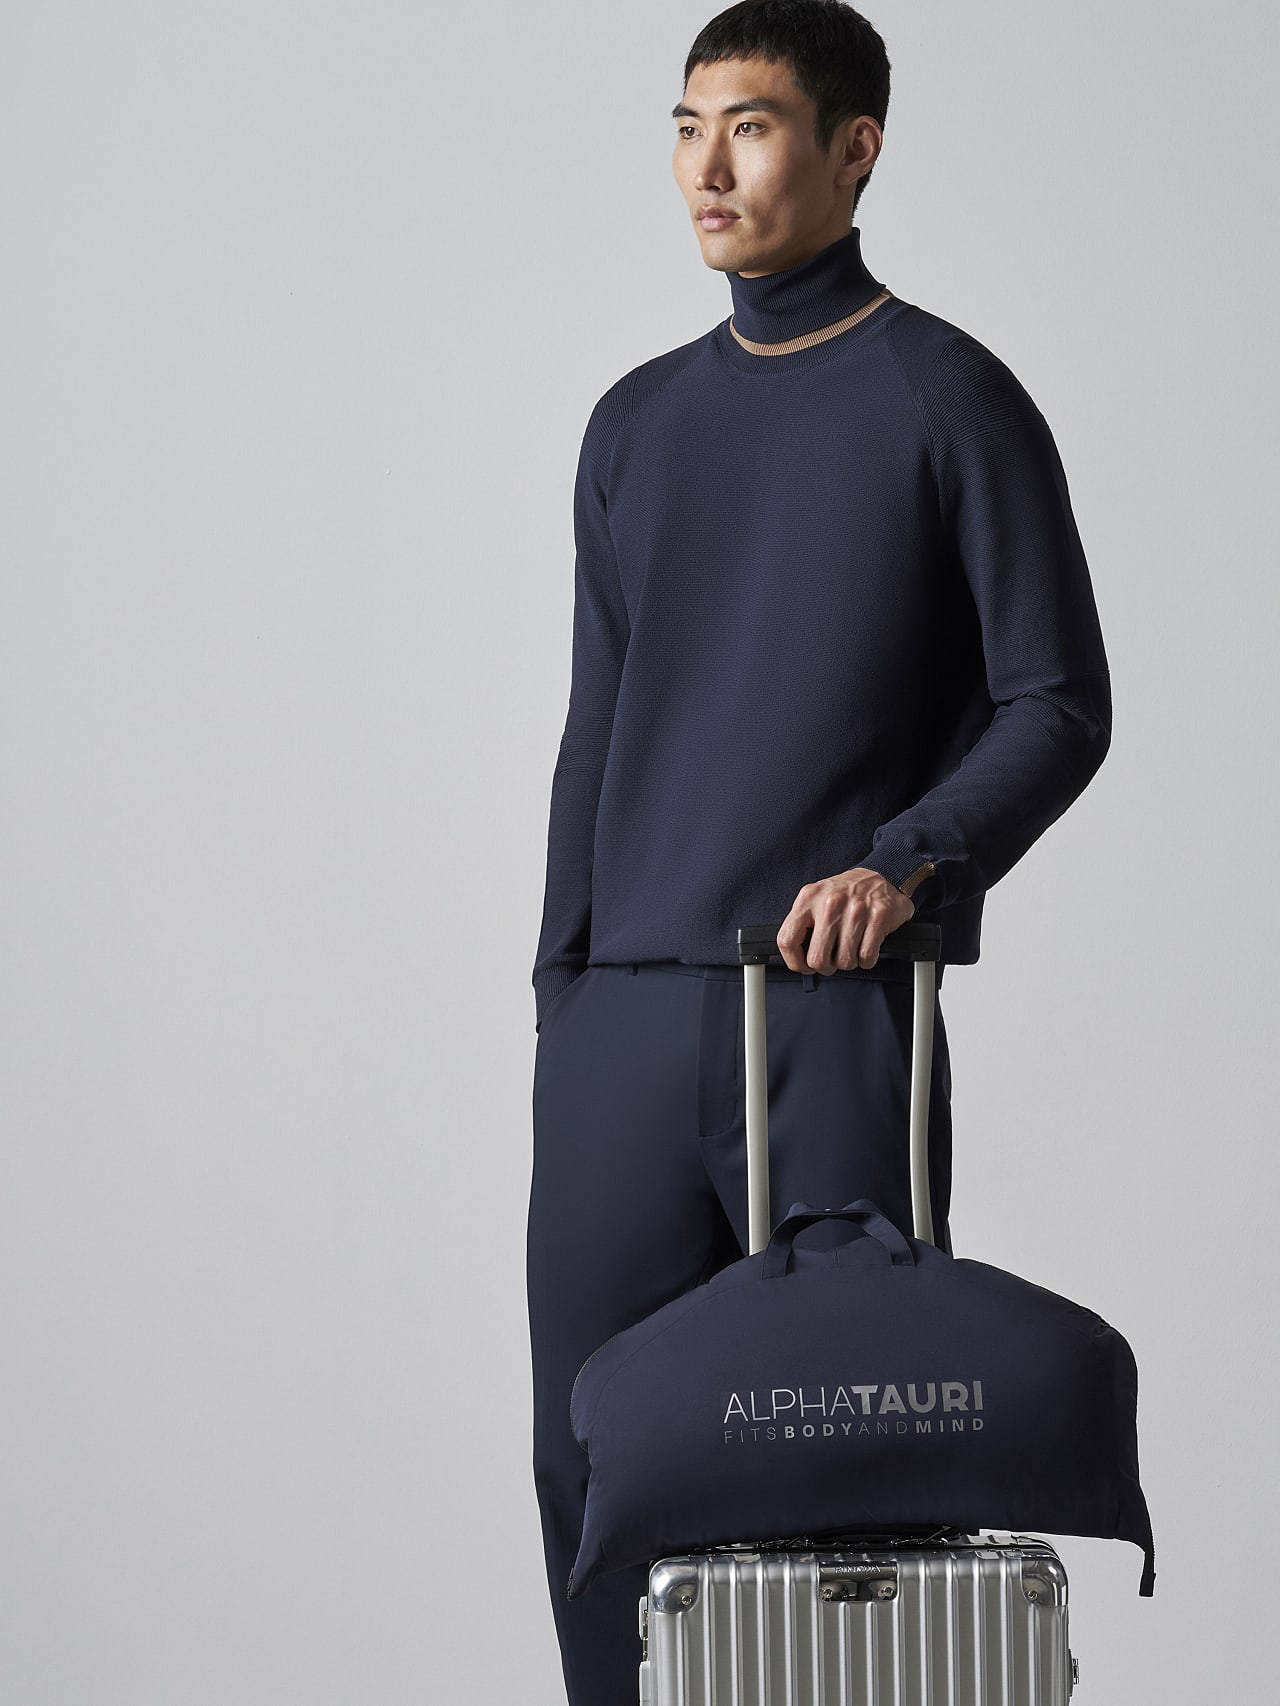 OKOVO V4.Y5.02 Packable and Waterproof Winter Jacket navy scene7.view.11.name Alpha Tauri